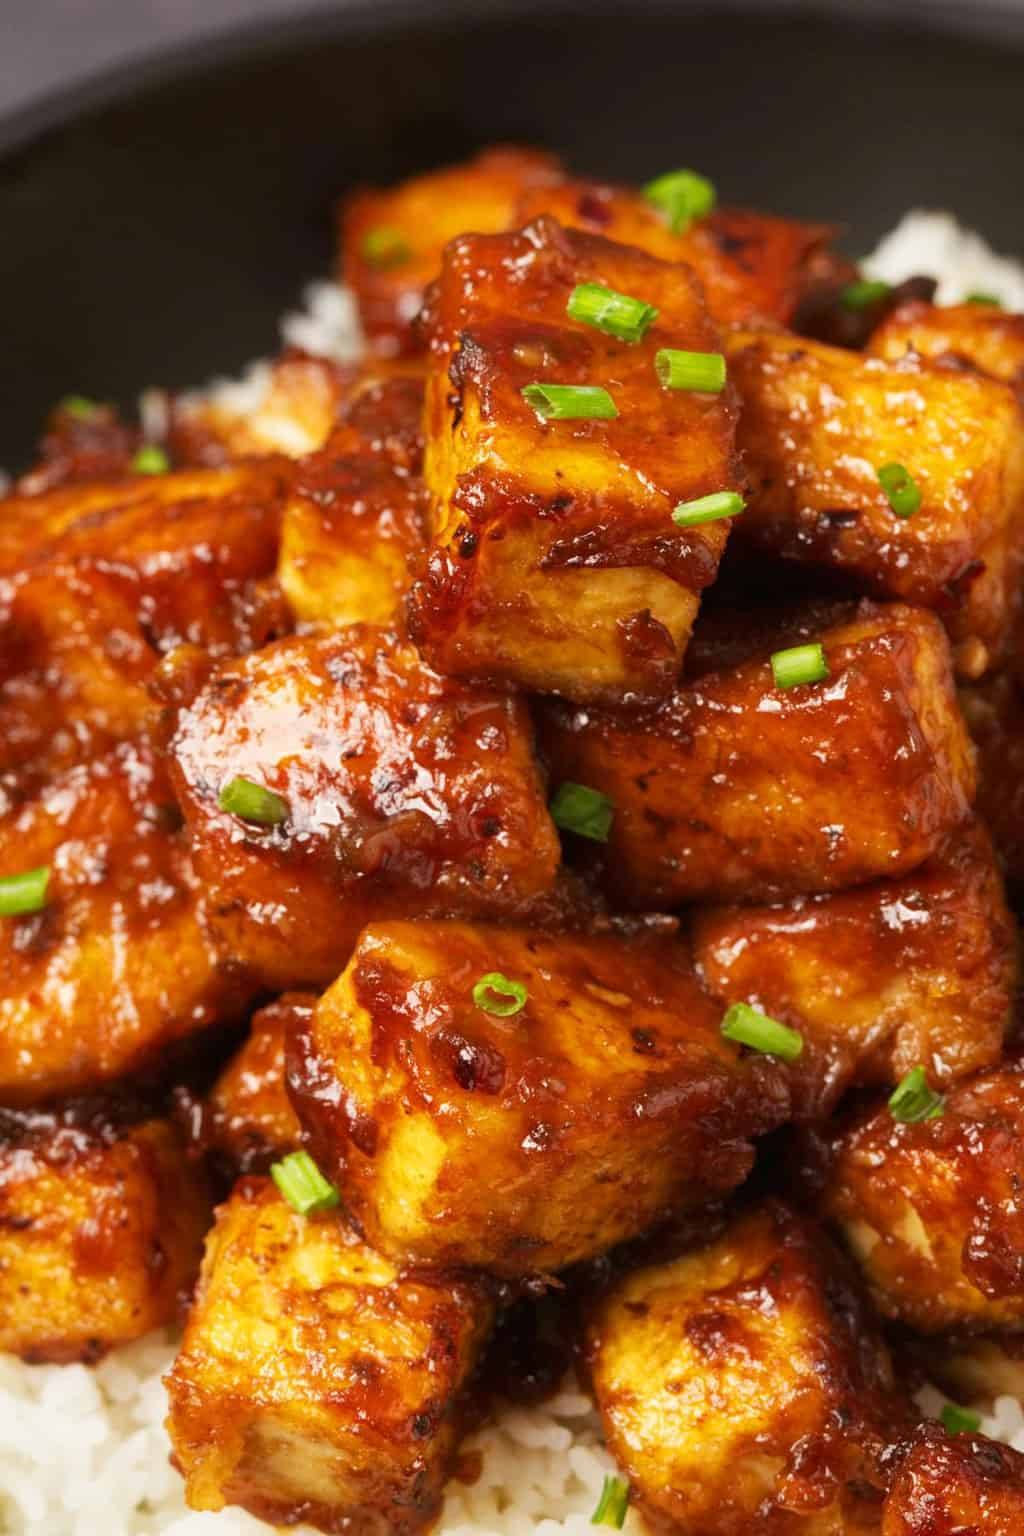 General Tso's tofu served with basmati rice and chopped chives in a black bowl.